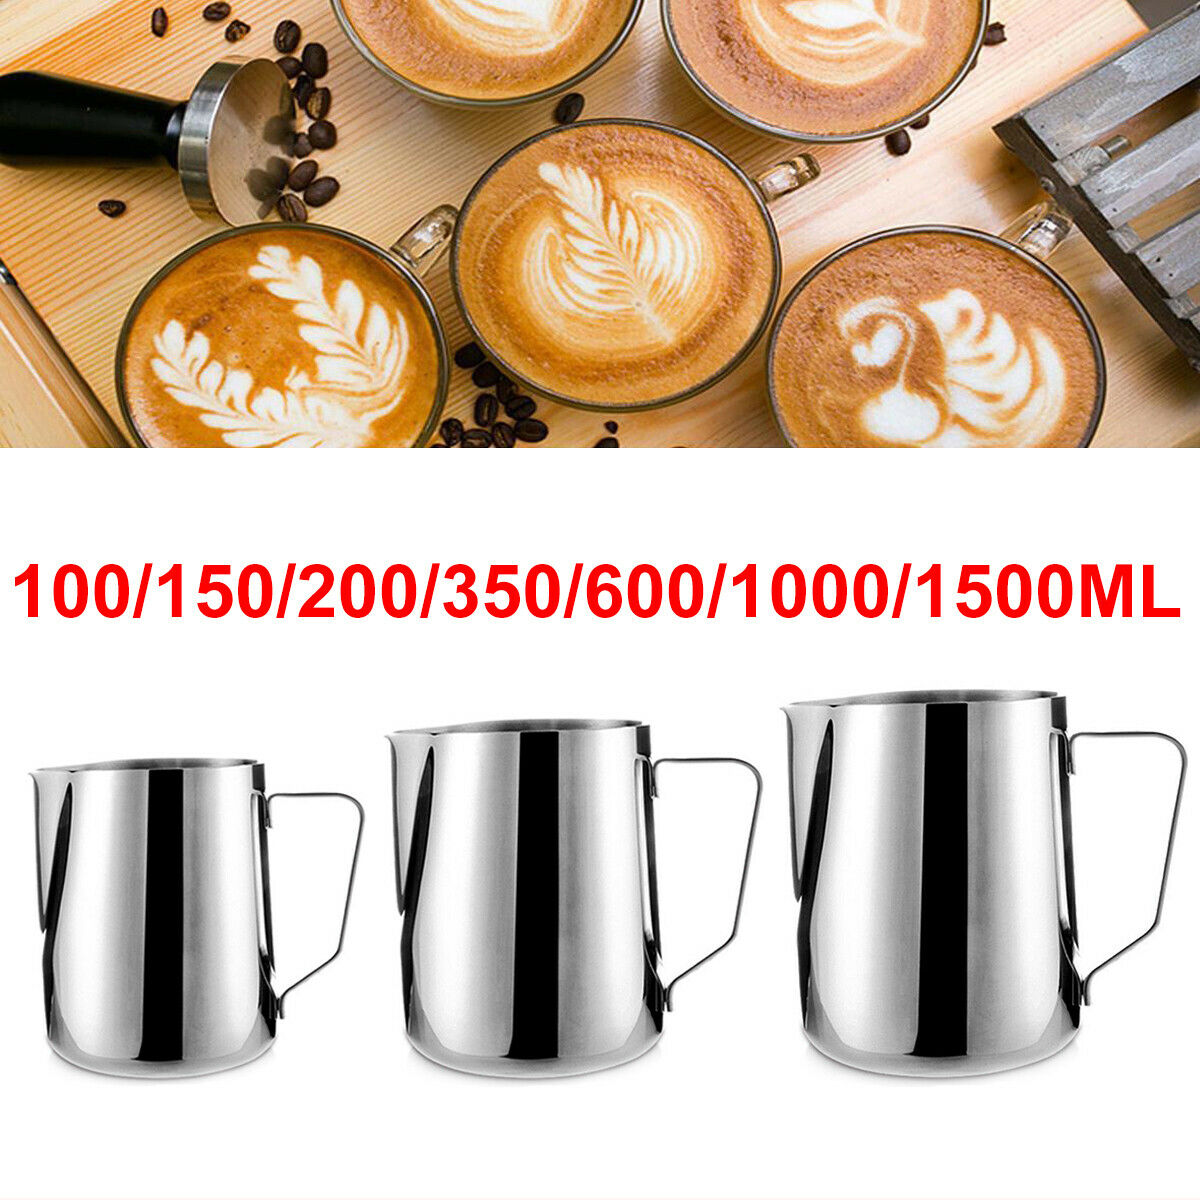 Stainless Steel Milk Frothing Jug Frother Coffee Latte Container Pitcher Mug Cup